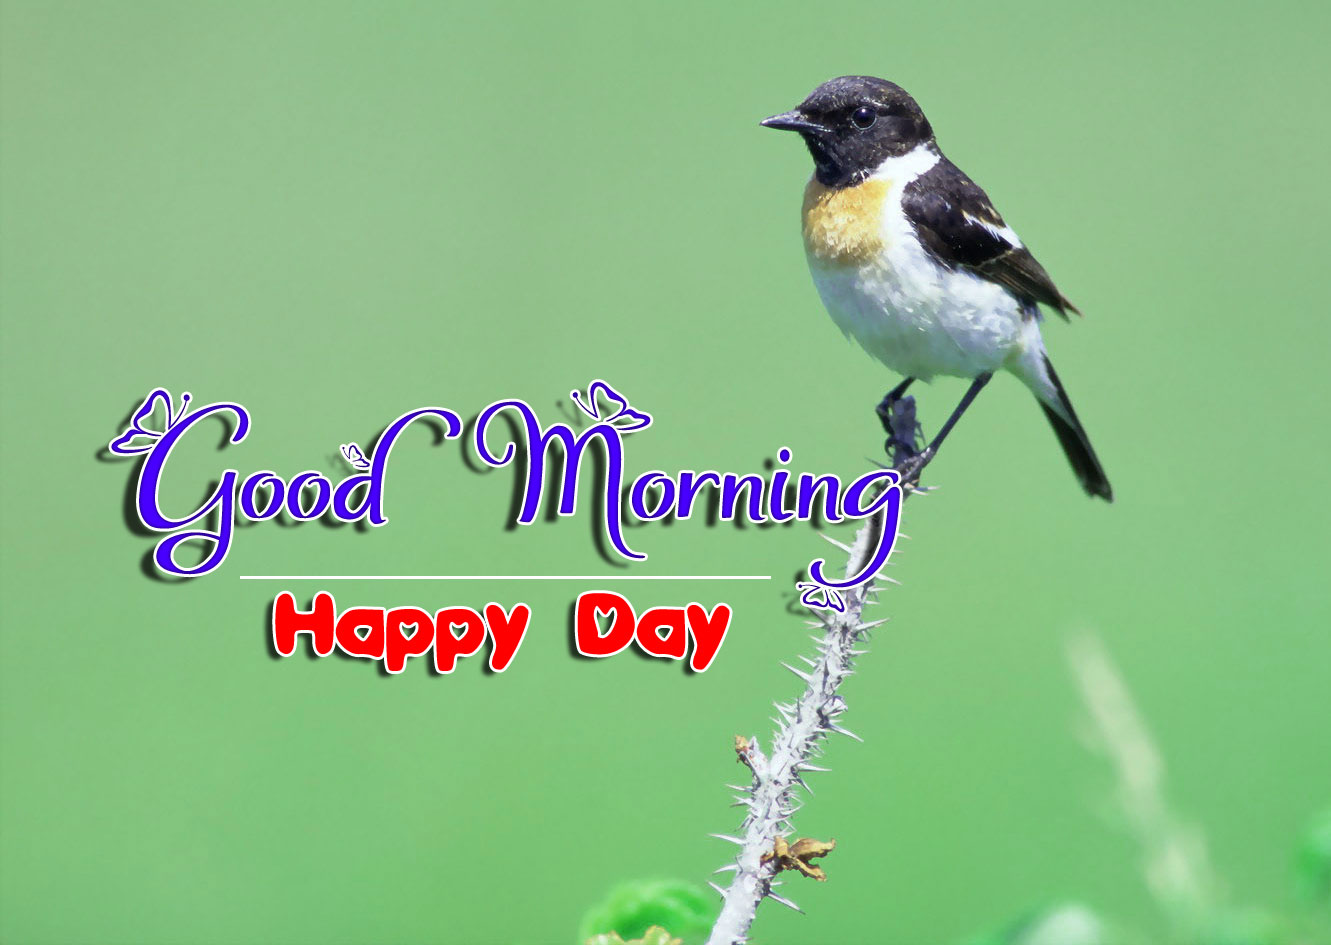 nice bird good morning images wallpaper hd